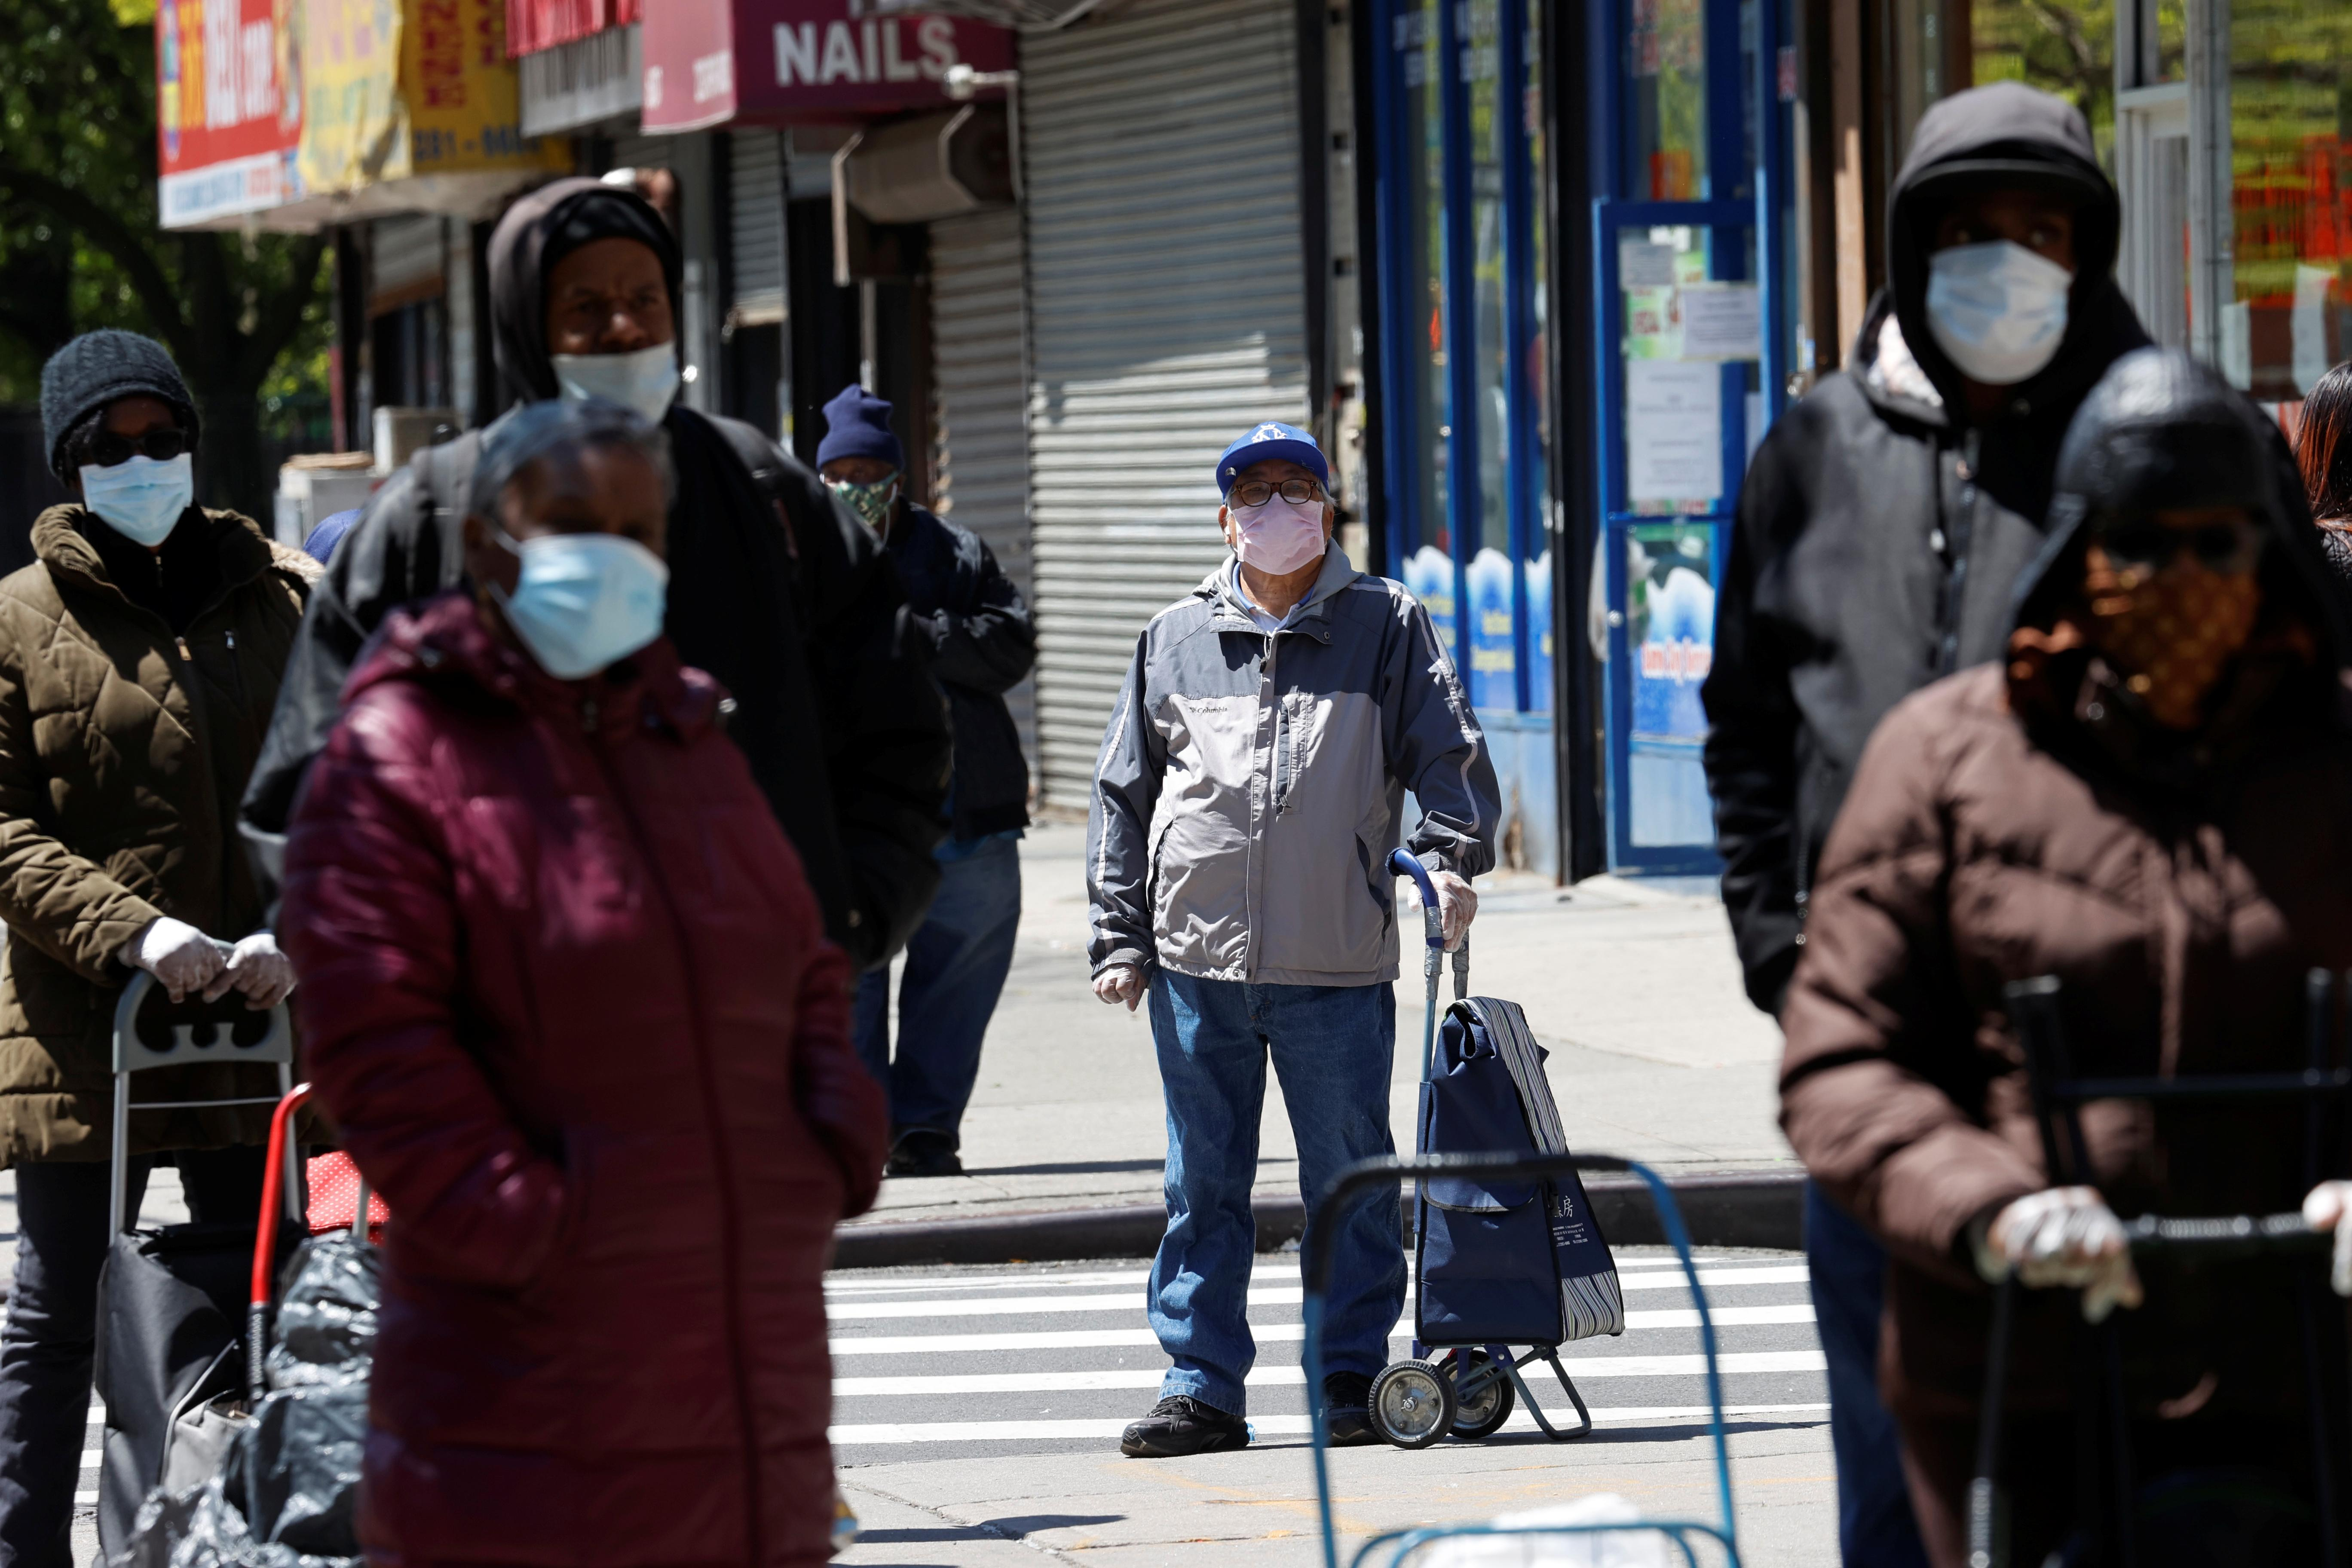 Stock futures extend declines as pandemic concerns continue